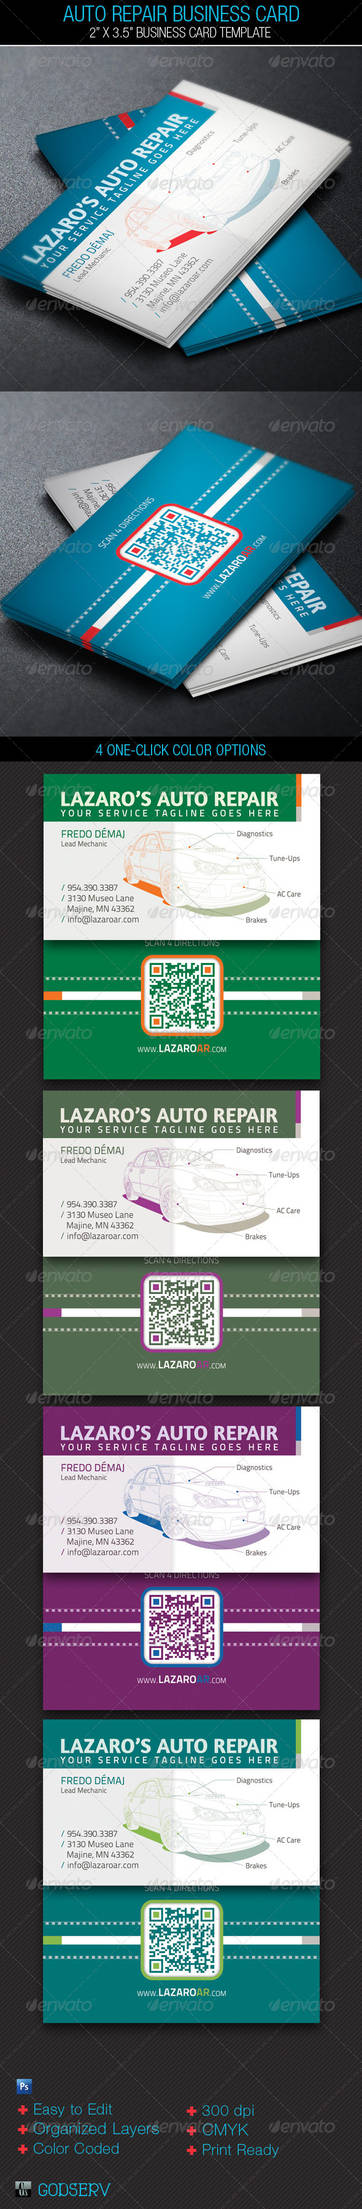 Auto Repair Service Business Card Template by Godserv